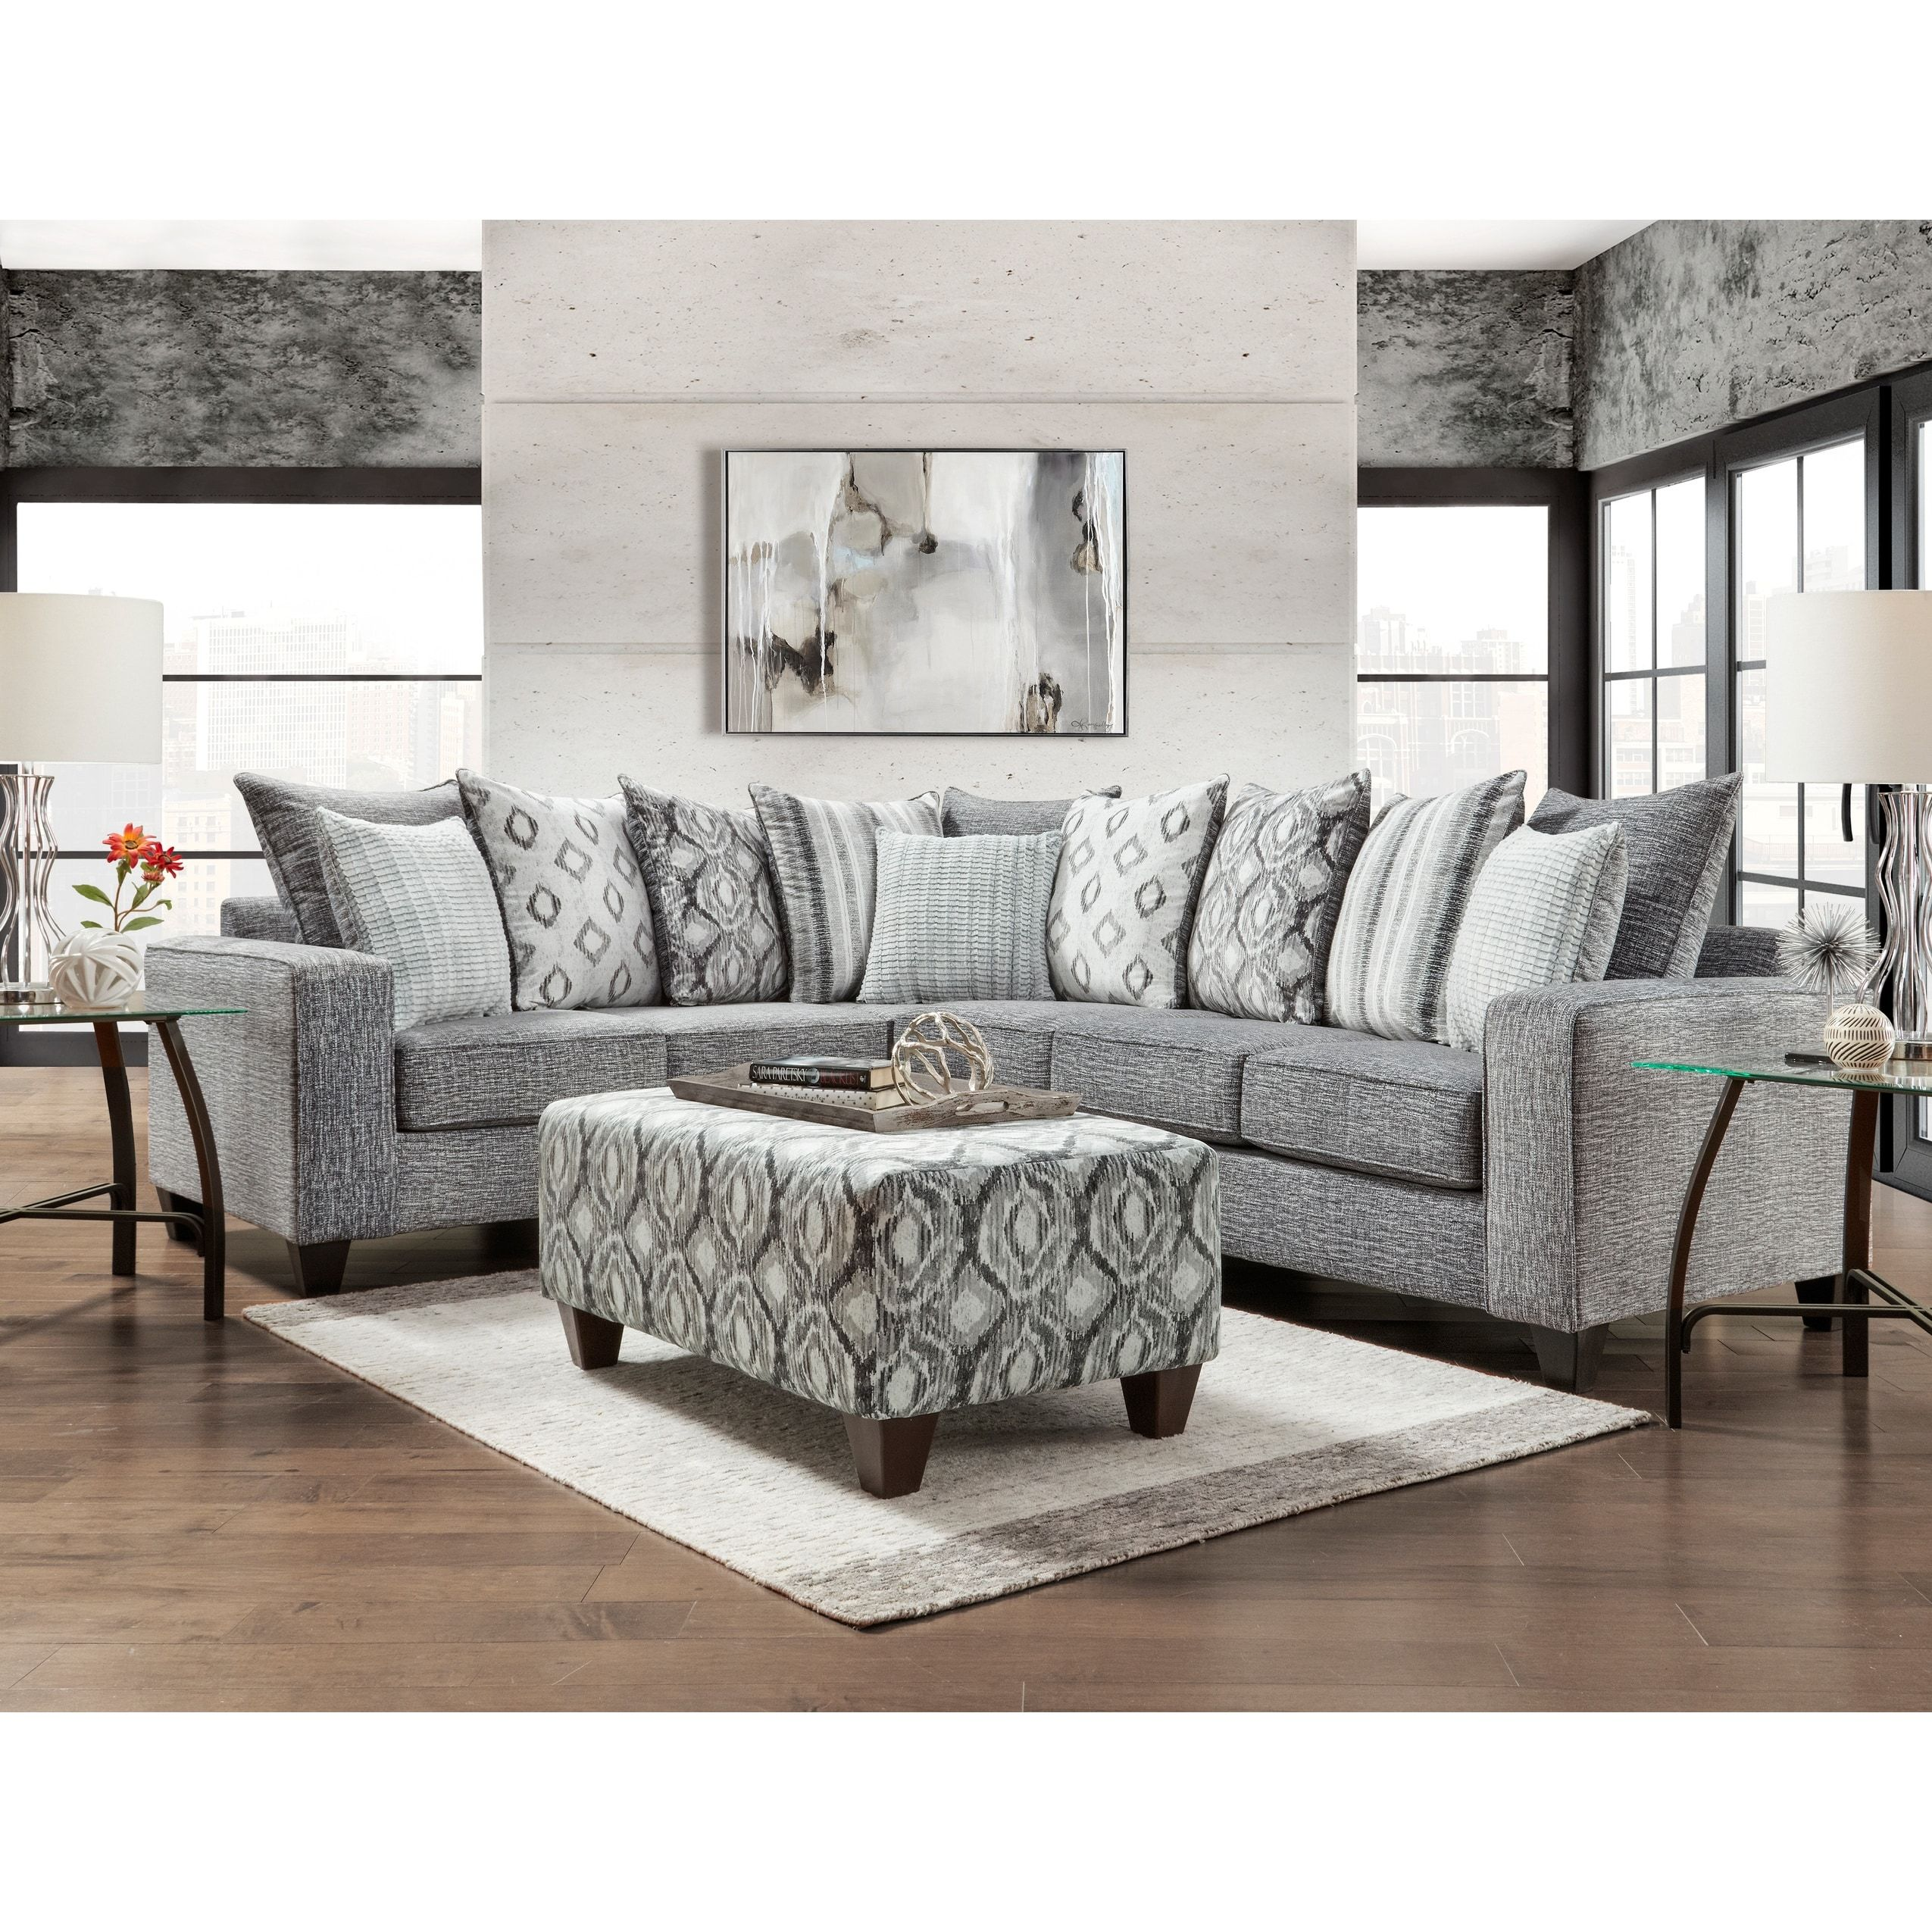 Our Best Living Room Furniture Deals Charcoal Sectional Furniture Sectional Sofa [ 2550 x 2550 Pixel ]